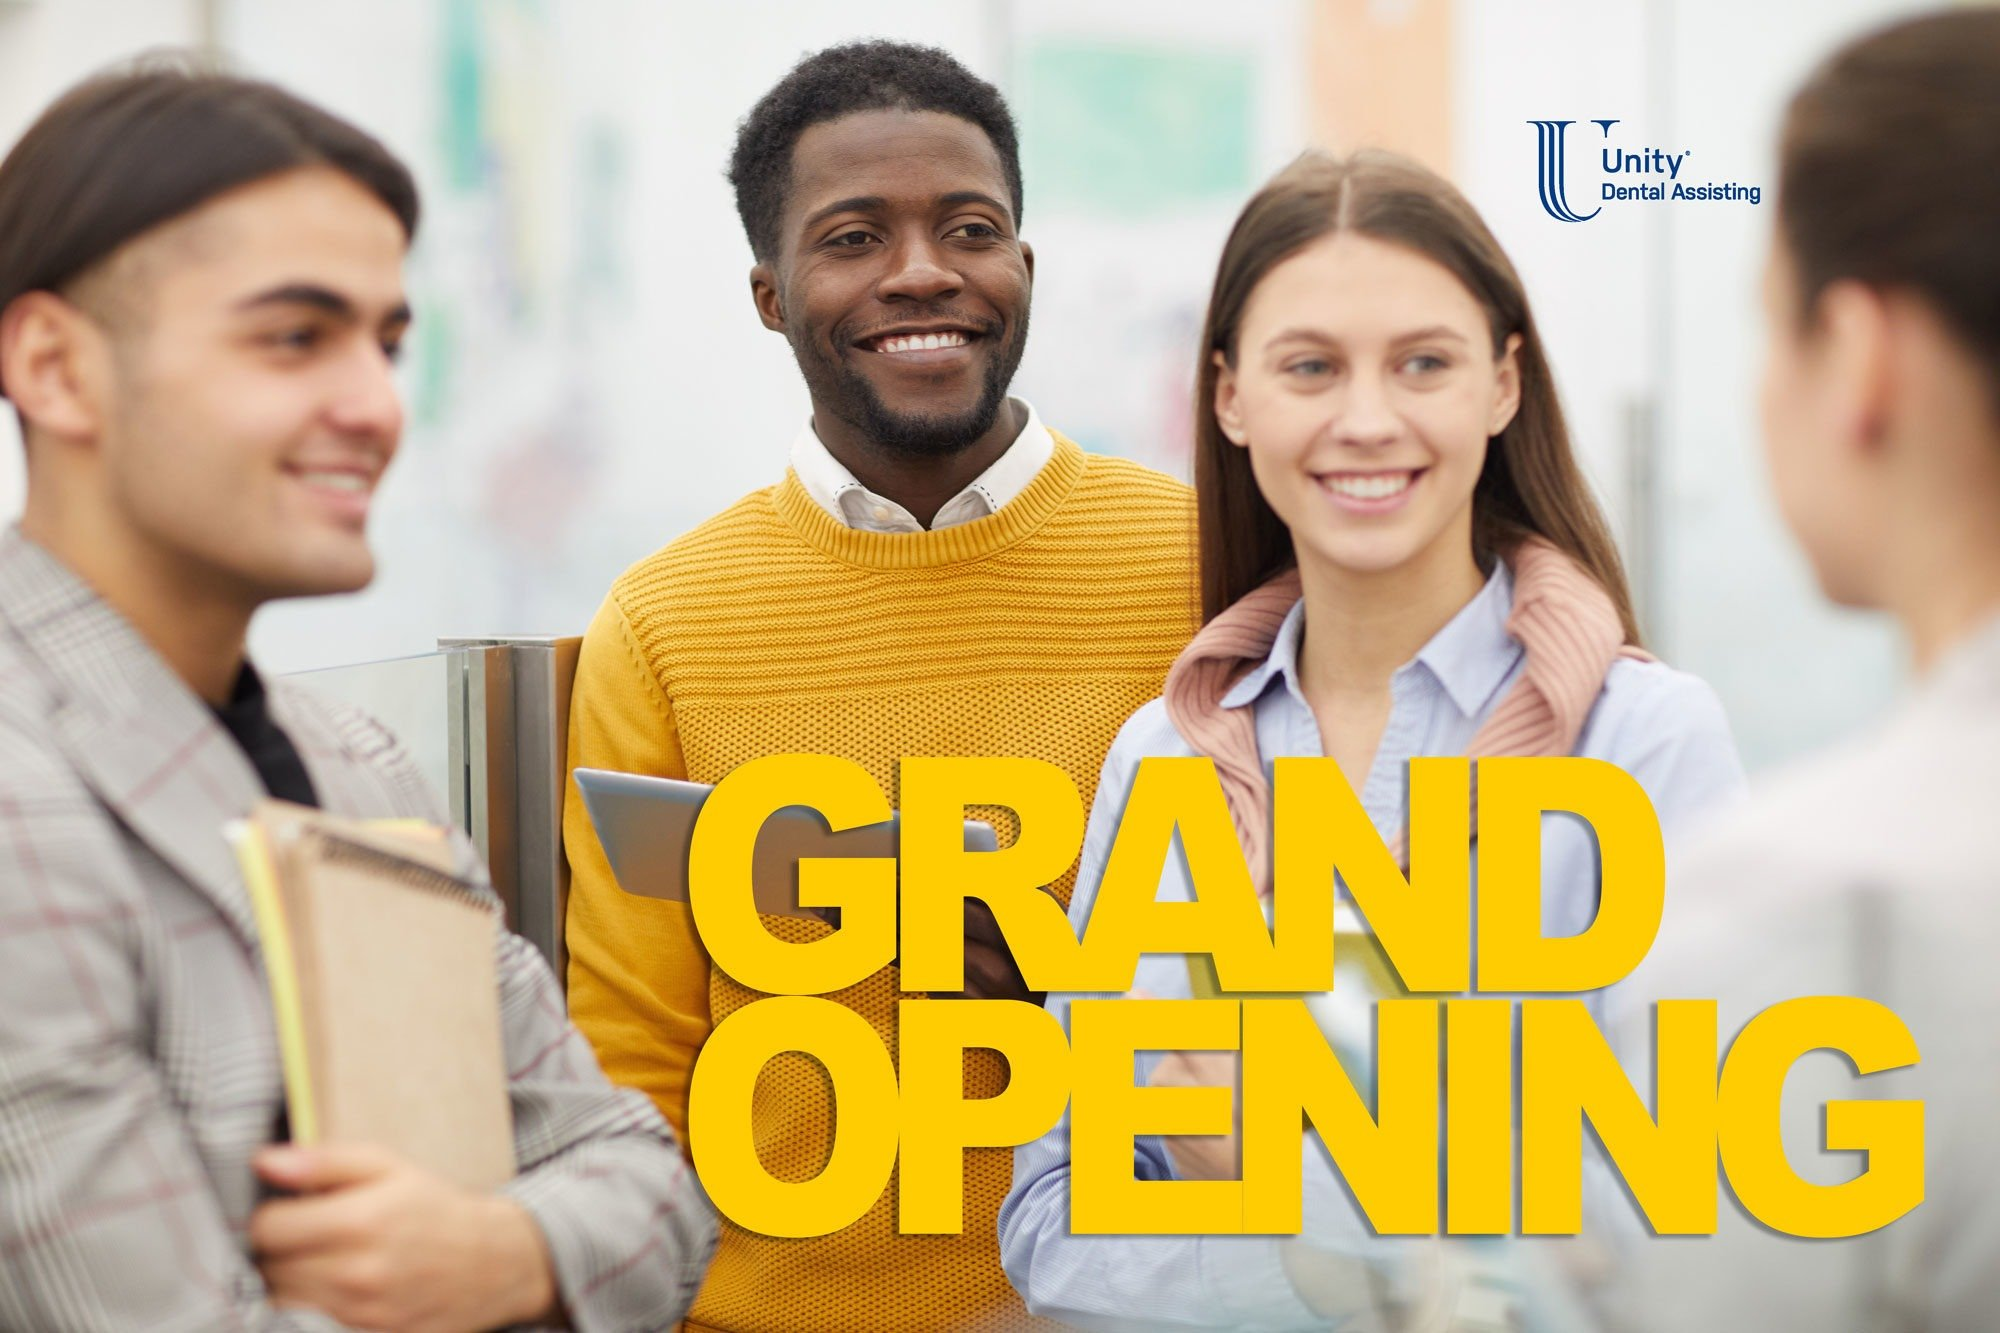 Dental assistant school hosting grand opening